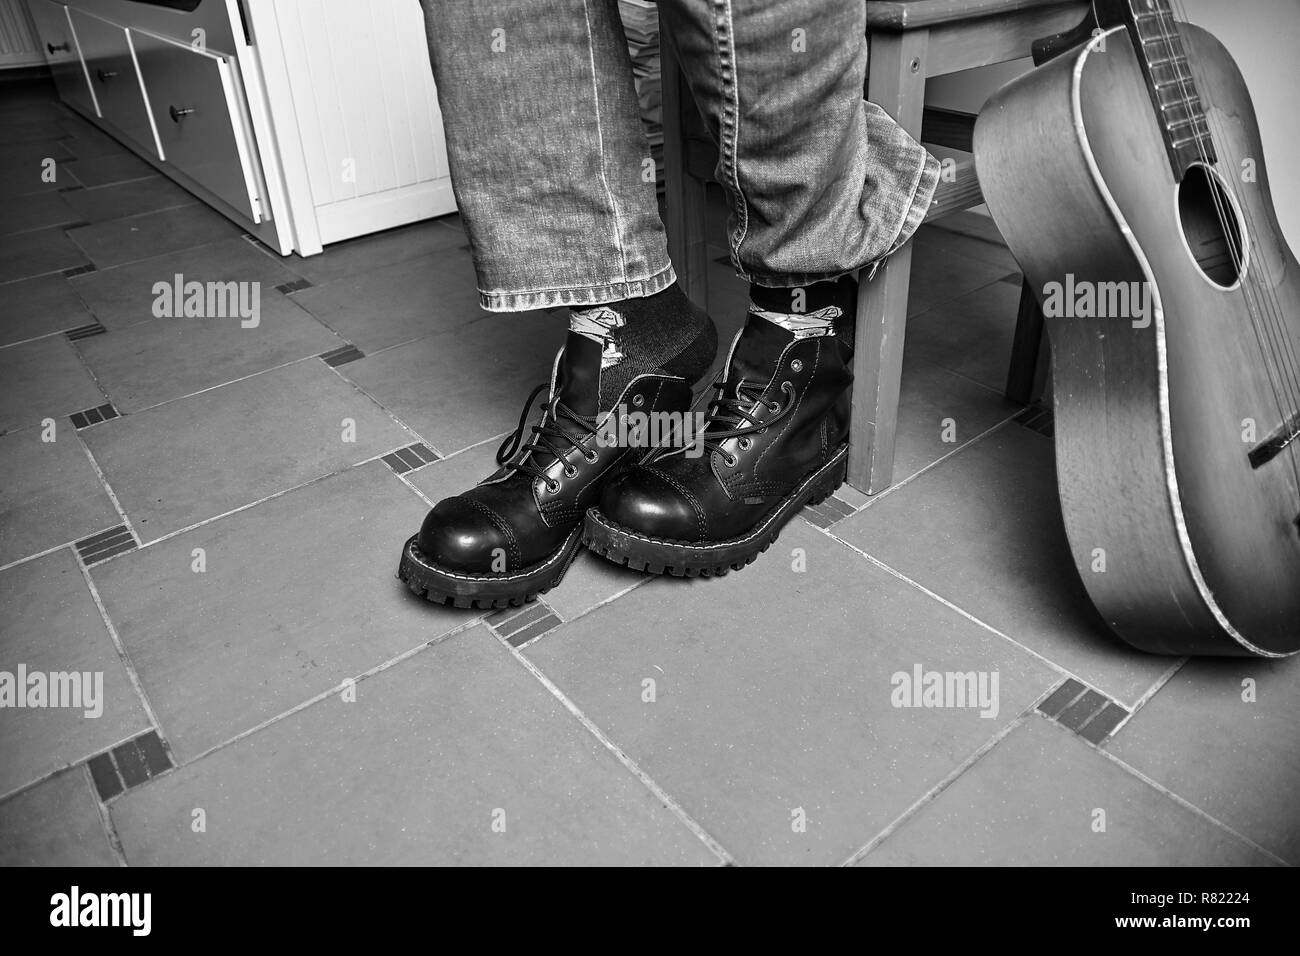 Rock and roll concept. Black boots and classic guitar. Black and white image - Stock Image